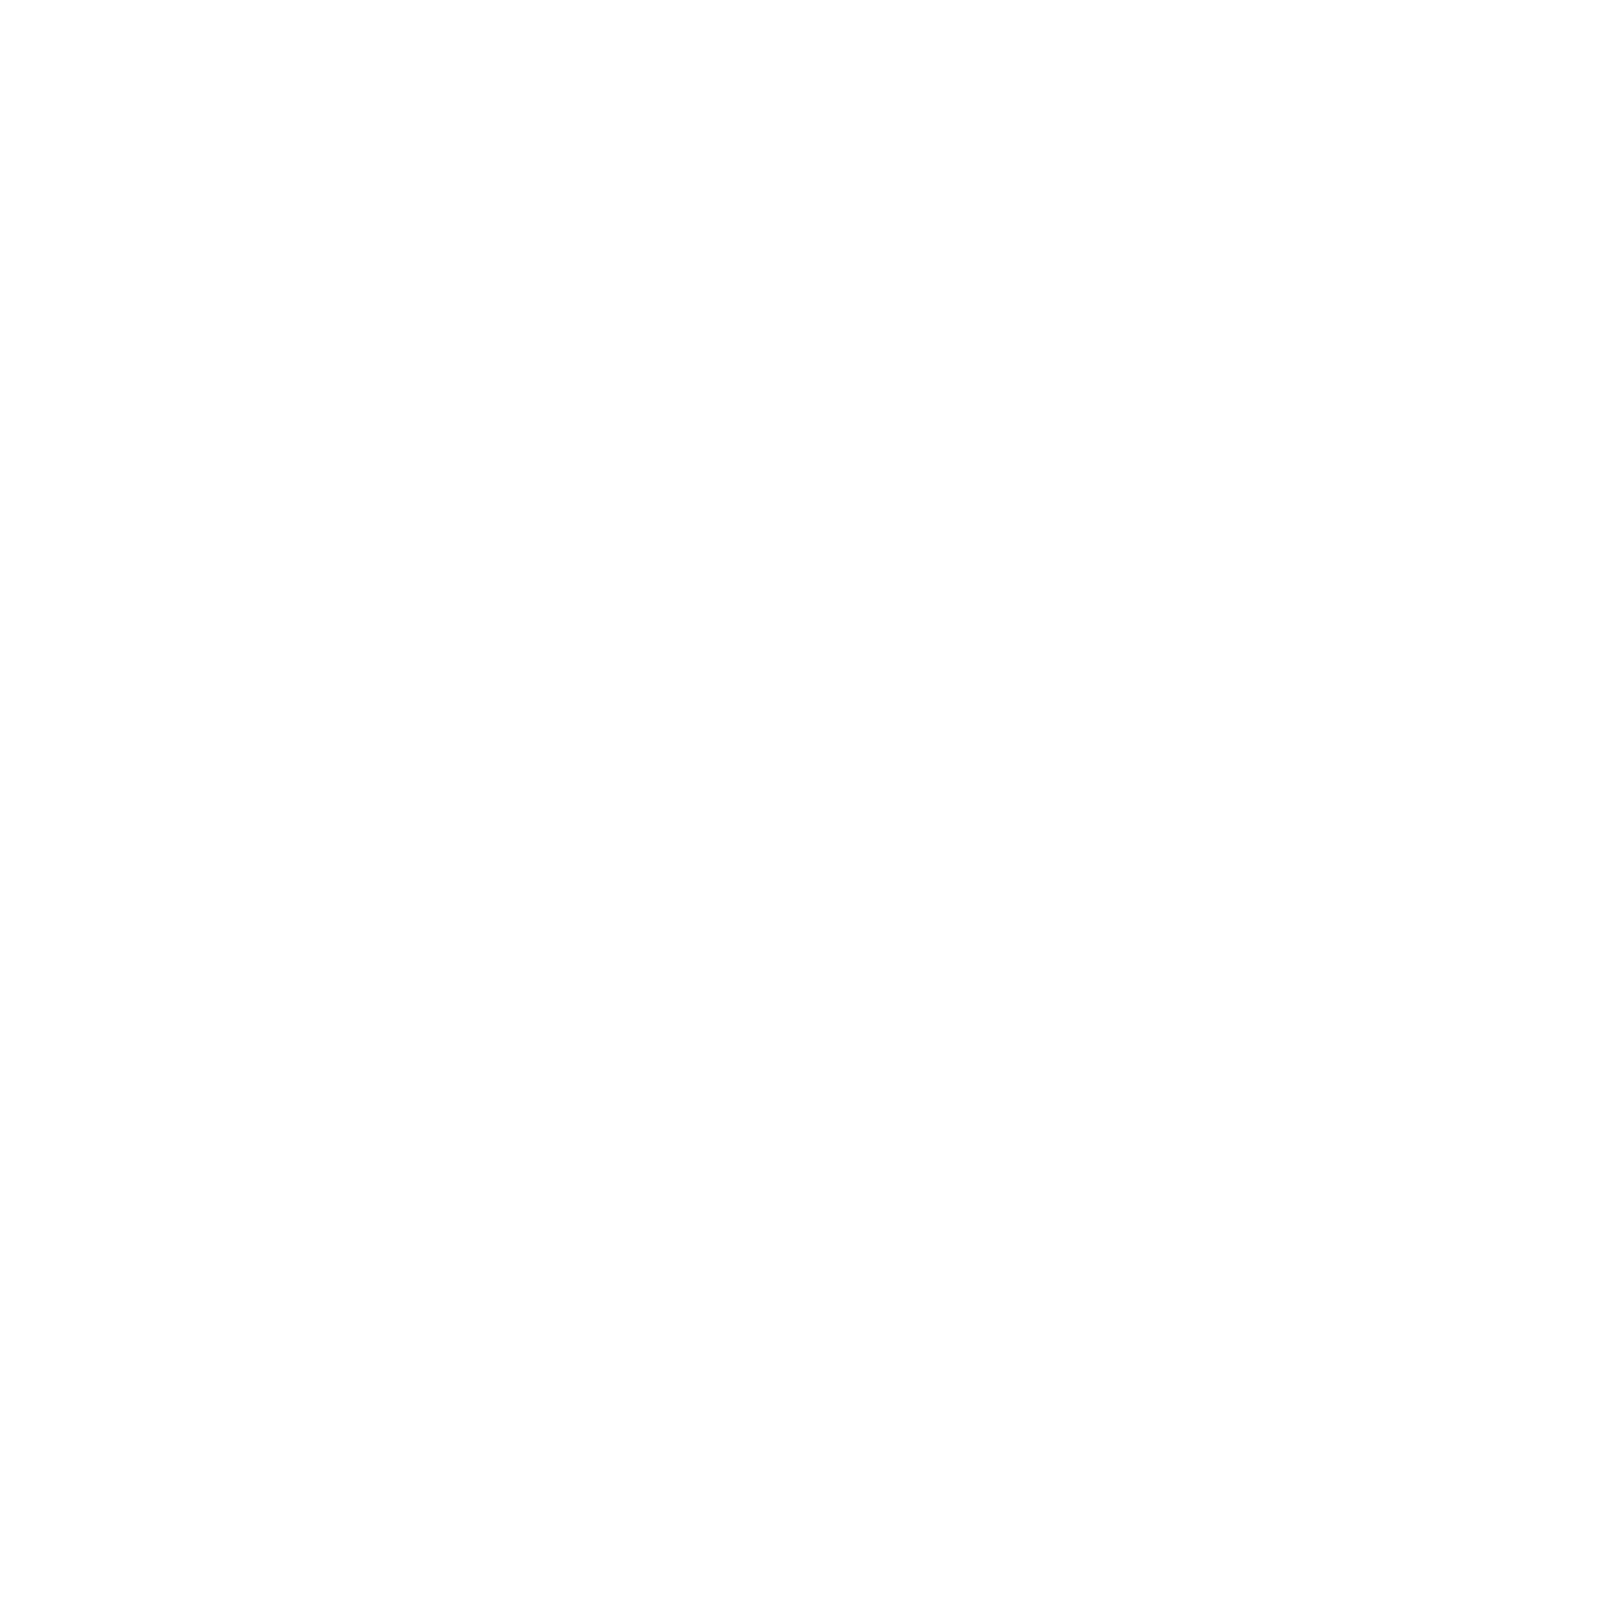 Morgan-adv-mat-project-logo